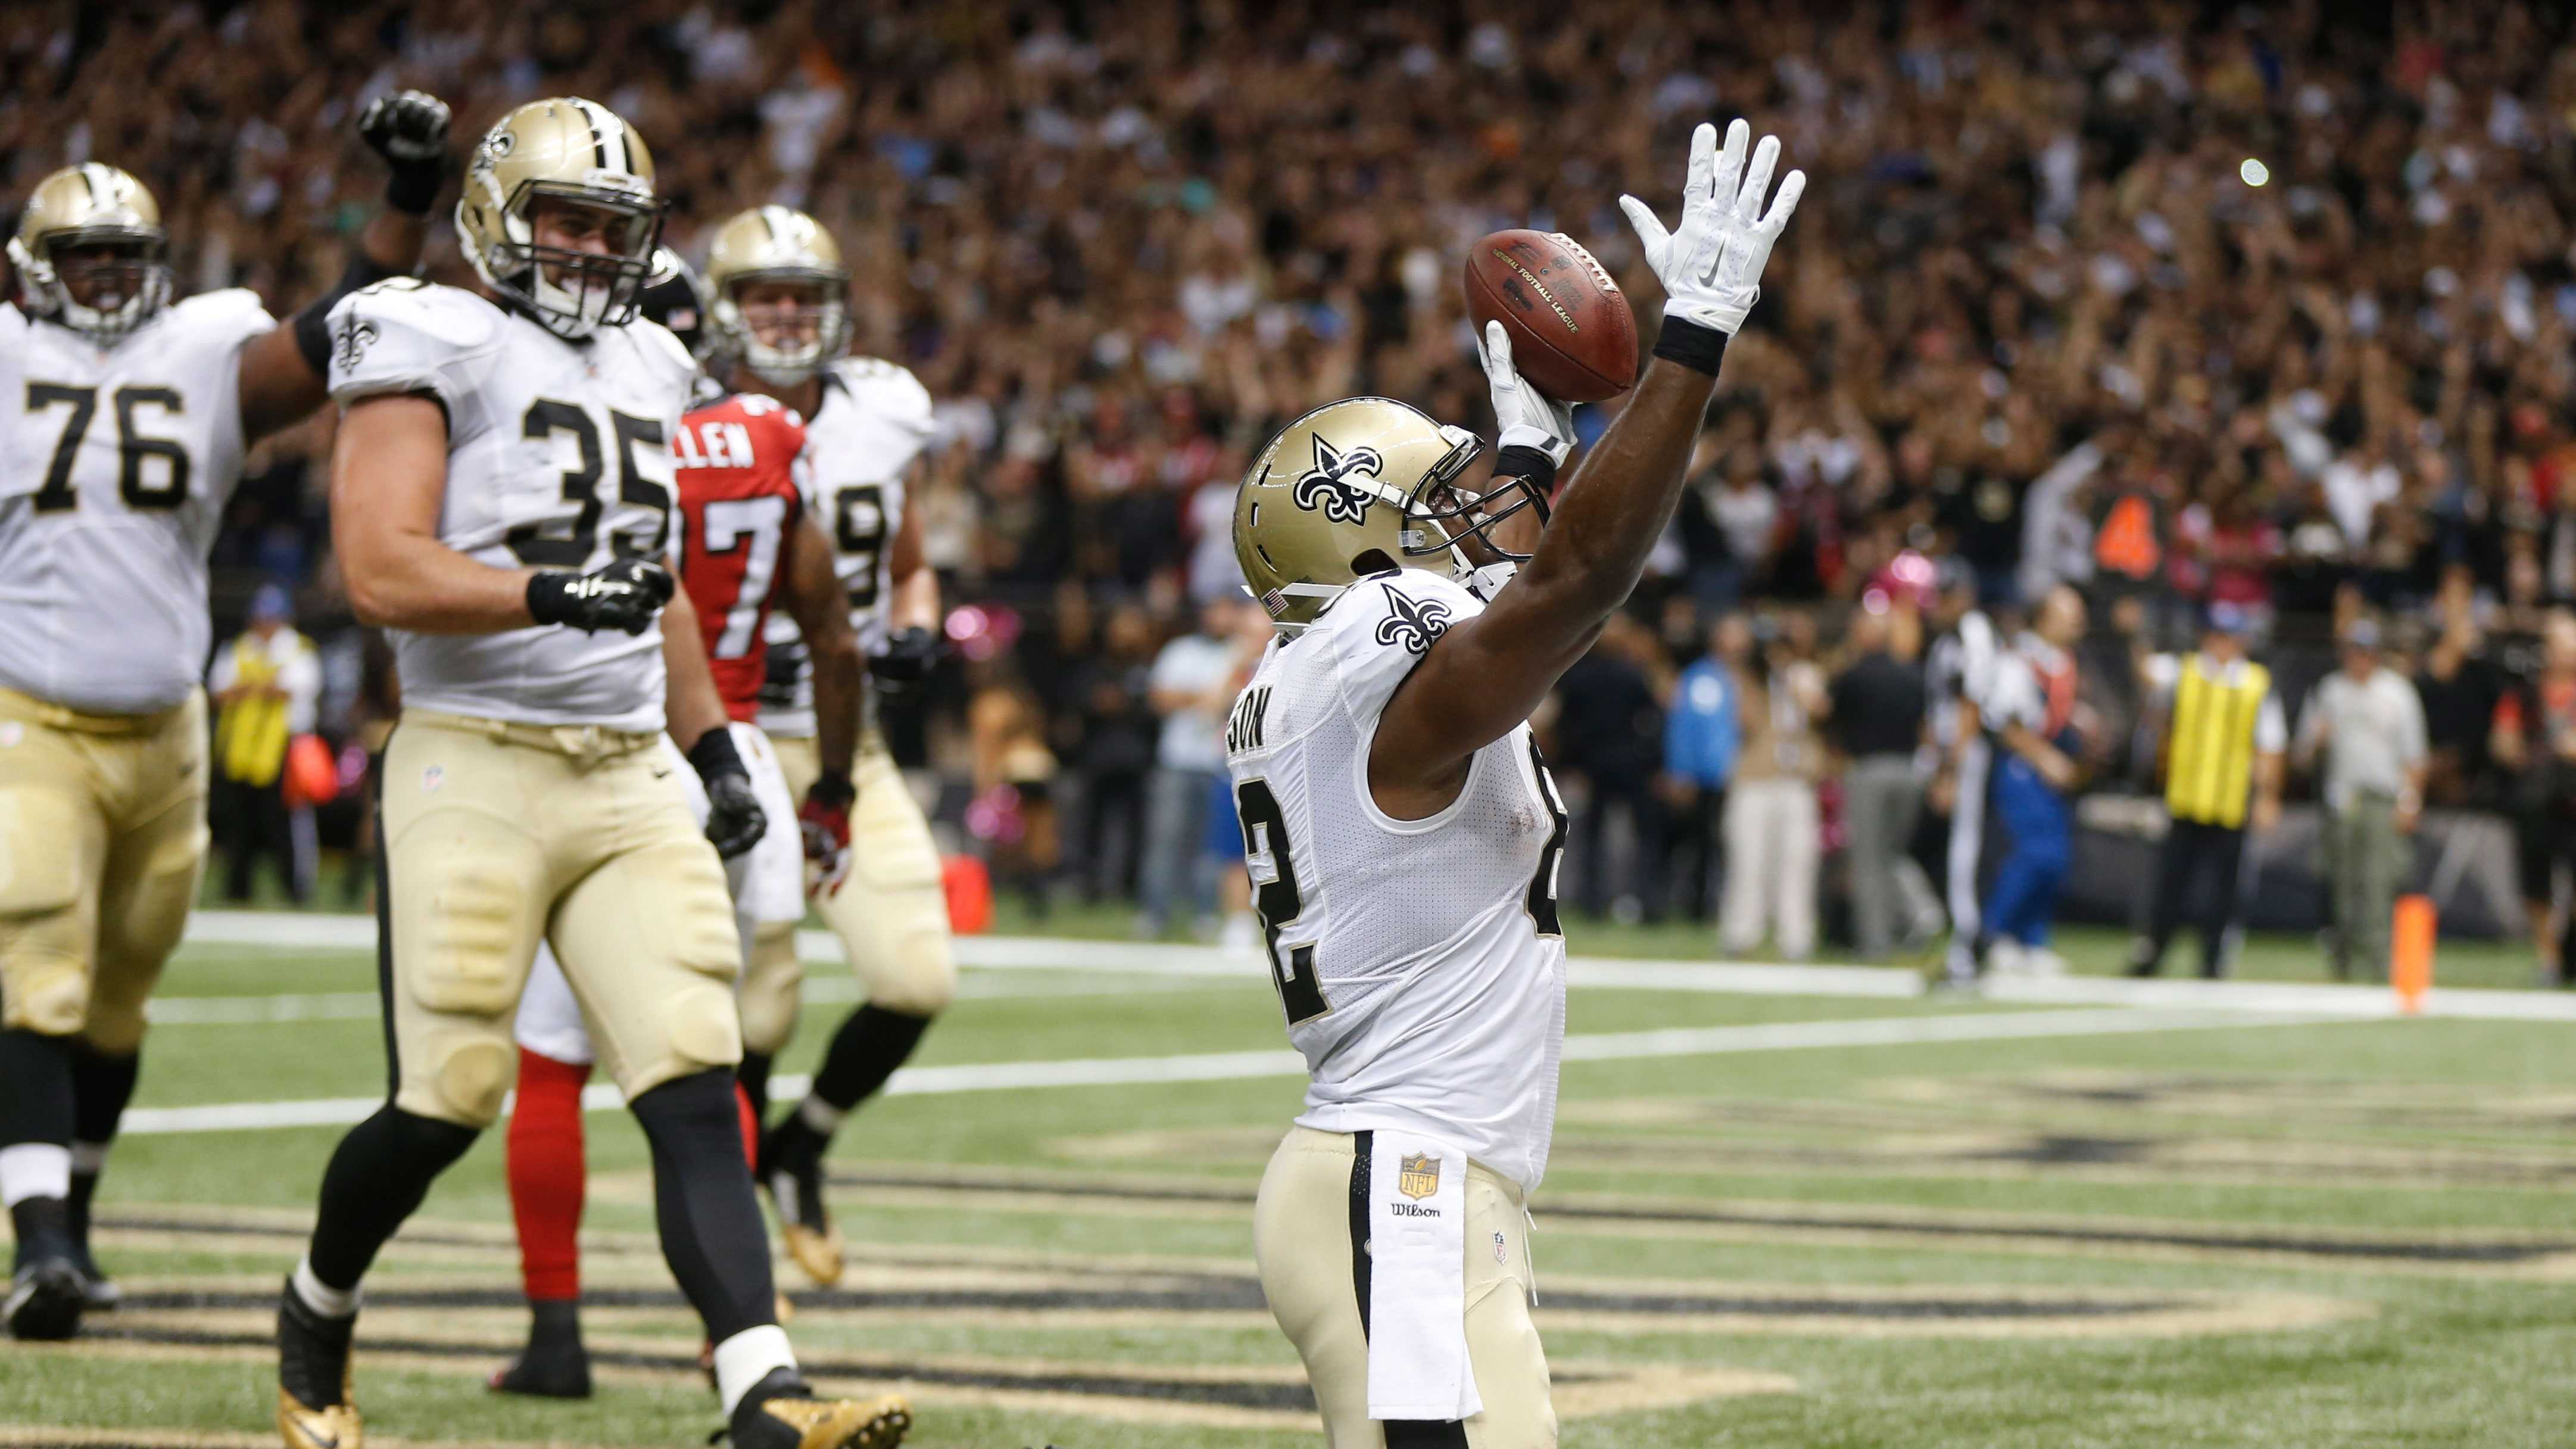 New Orleans Saints tight end Benjamin Watson (82) celebrates his touchdown catch against the Atlanta Falcons during the second half of an NFL football game, Thursday, Oct. 15, 2015, in New Orleans.